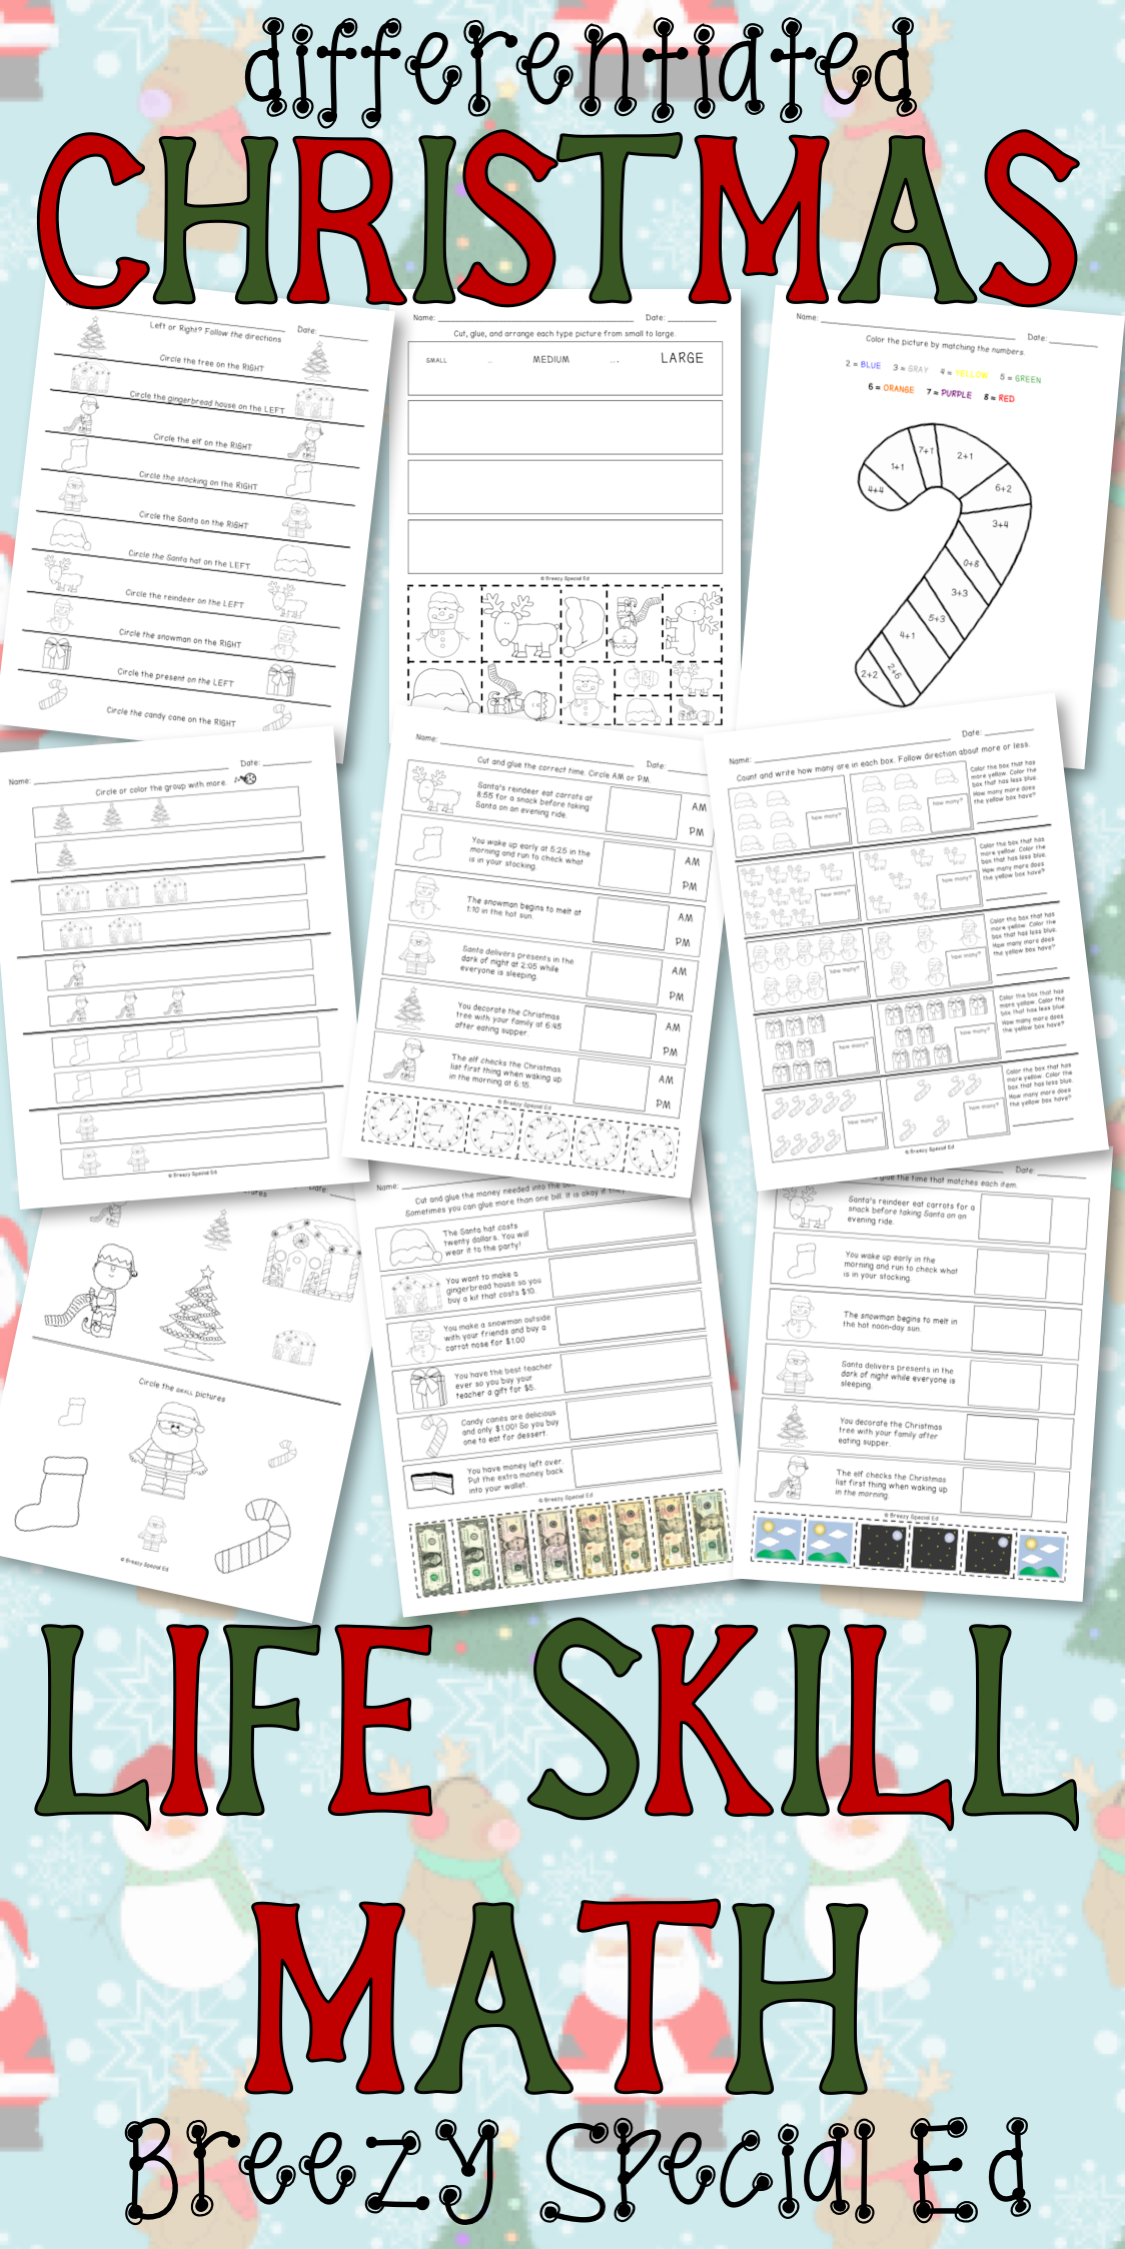 worksheet Functional Math Worksheets christmas differentiated life skill math pack special education education